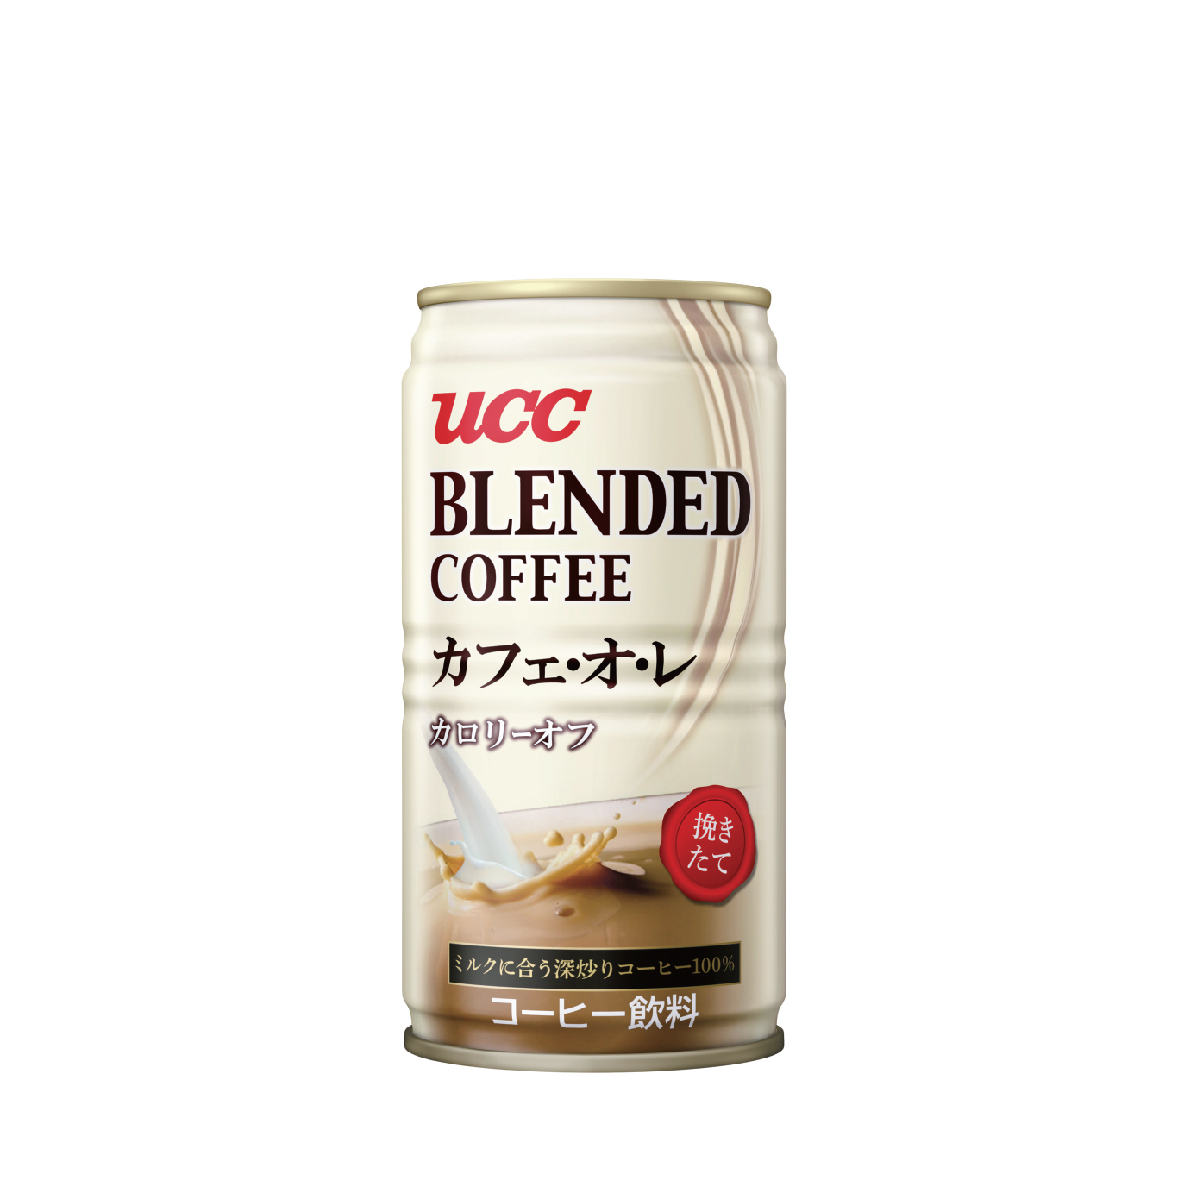 UCC Blended Coffee Cafe Au Lait